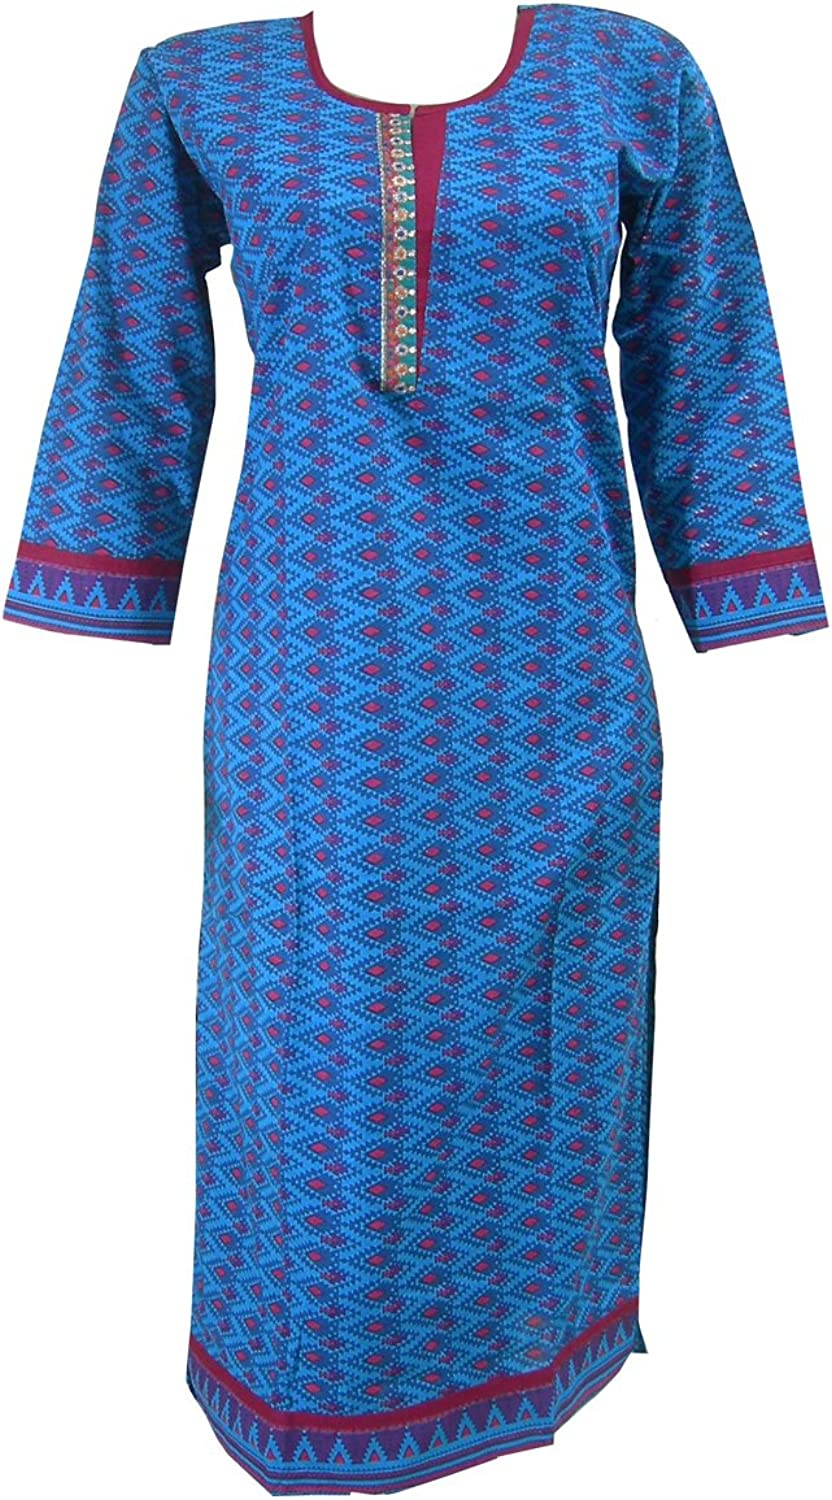 Panini Impex Gift for Women Printed Cotton Long Top India Clothing